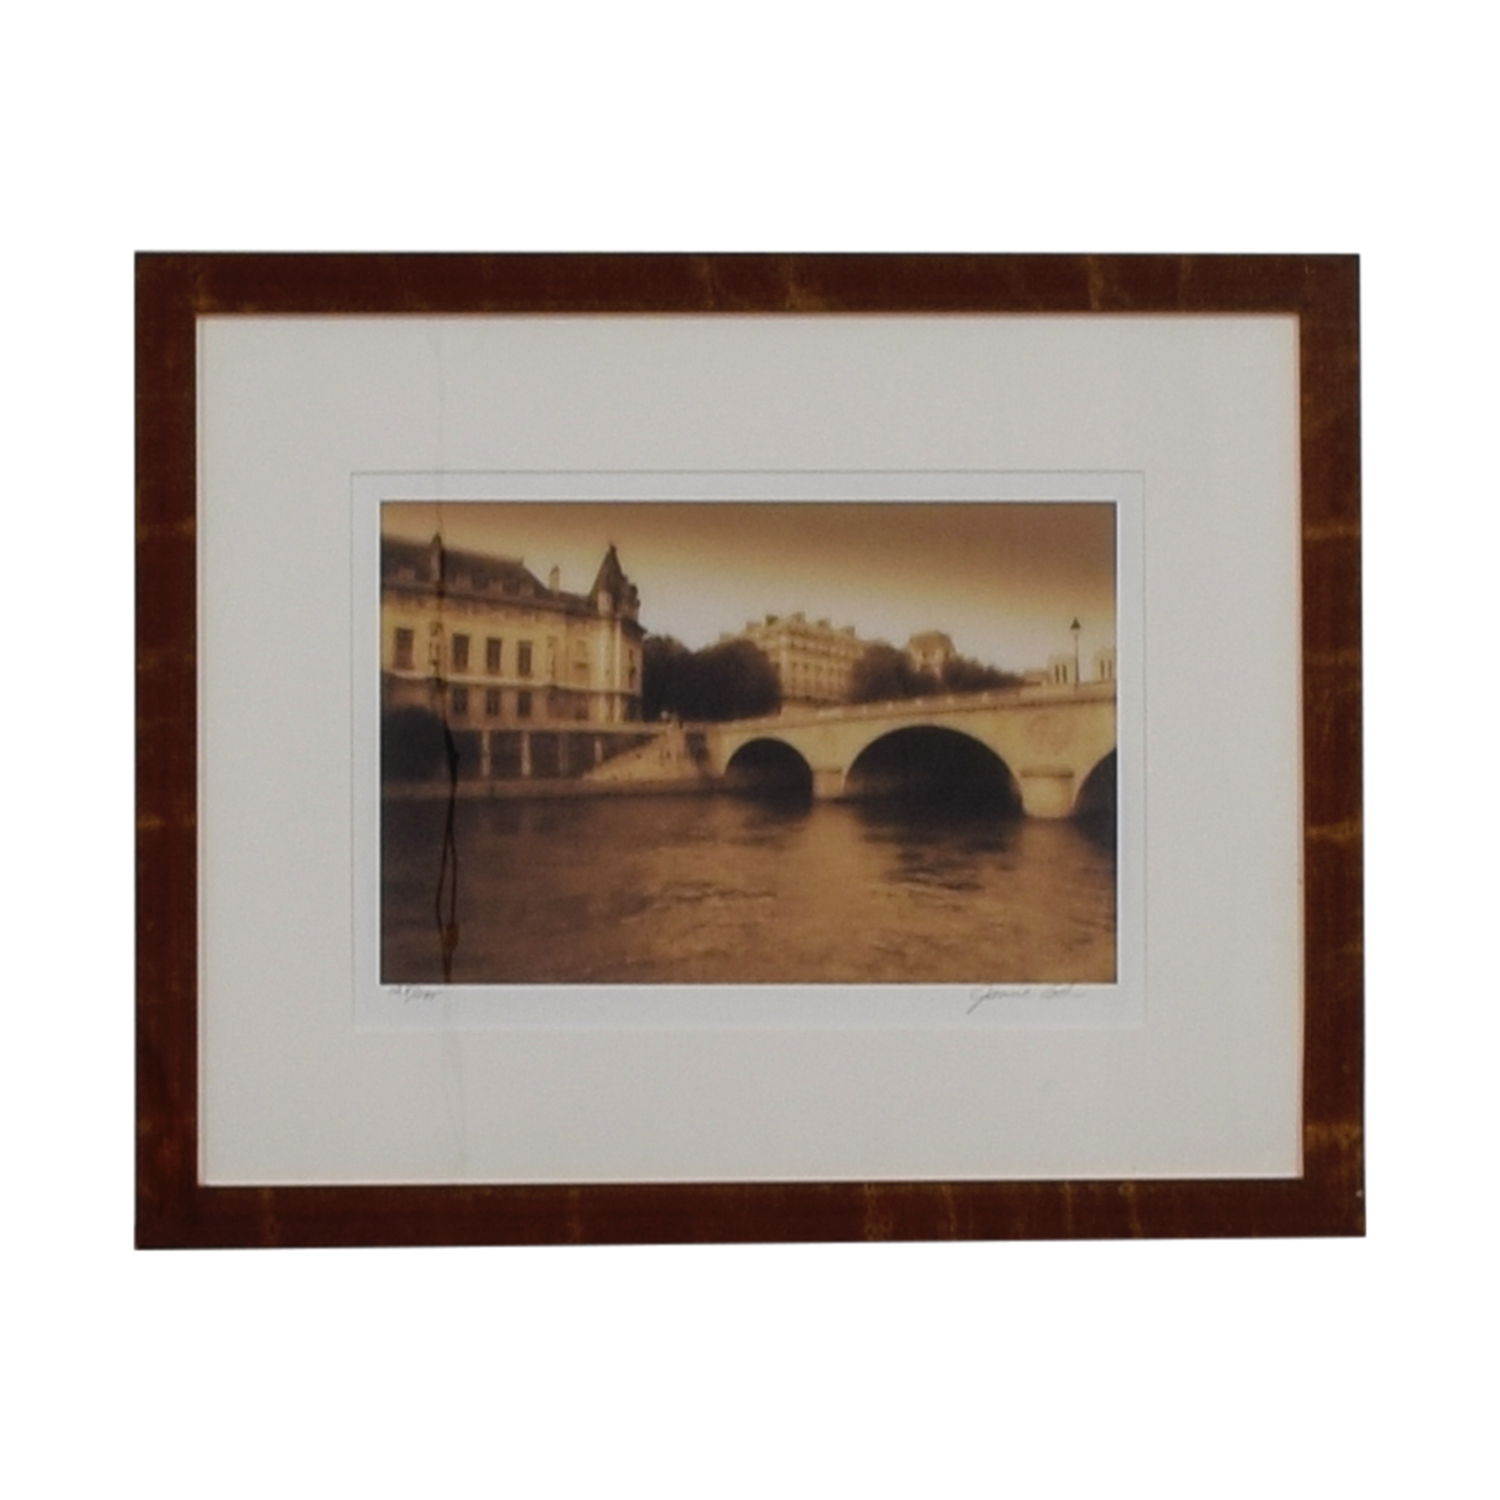 European Scenic Bridge Scene Framed Artwork nyc